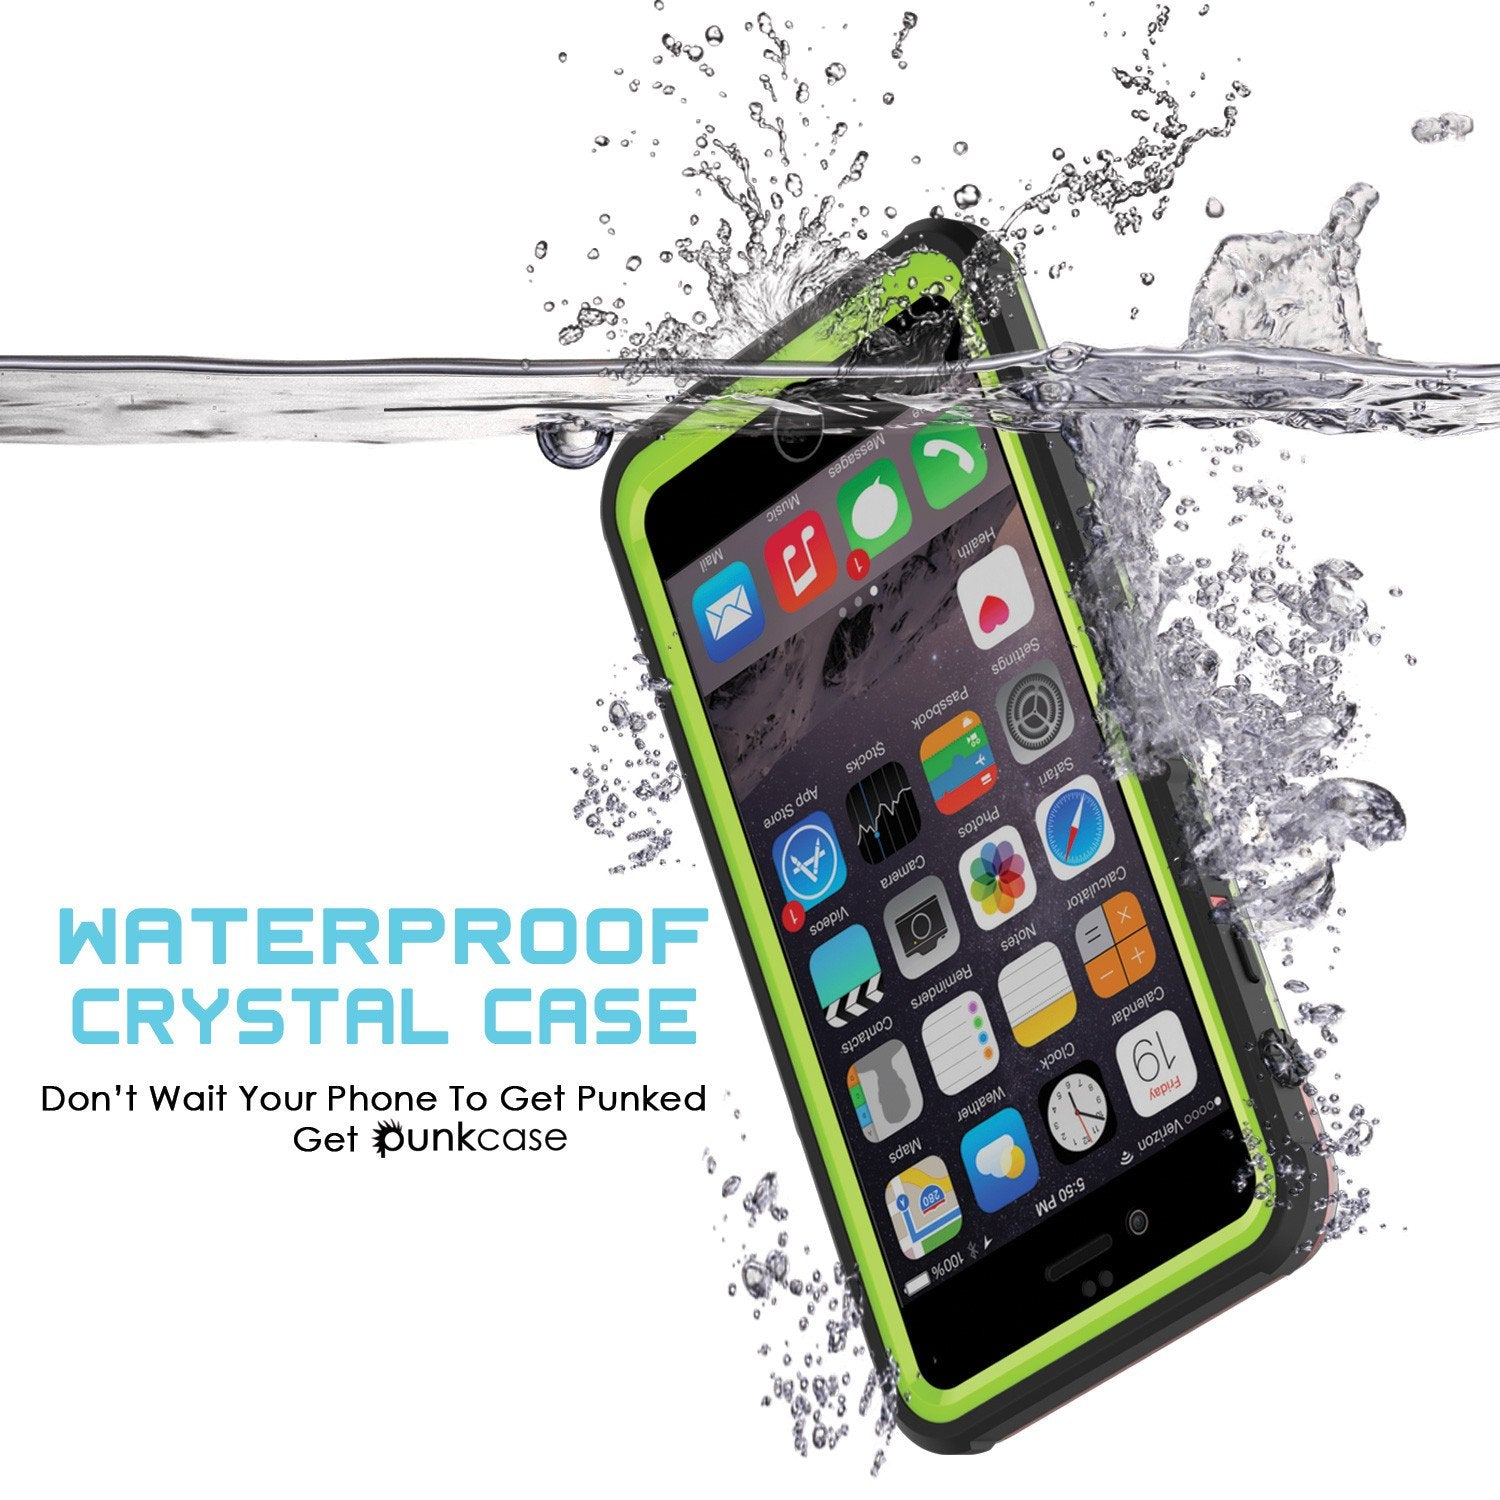 iPhone 6/6S Waterproof Case, PUNKcase CRYSTAL Light Green  W/ Attached Screen Protector  | Warranty - PunkCase NZ